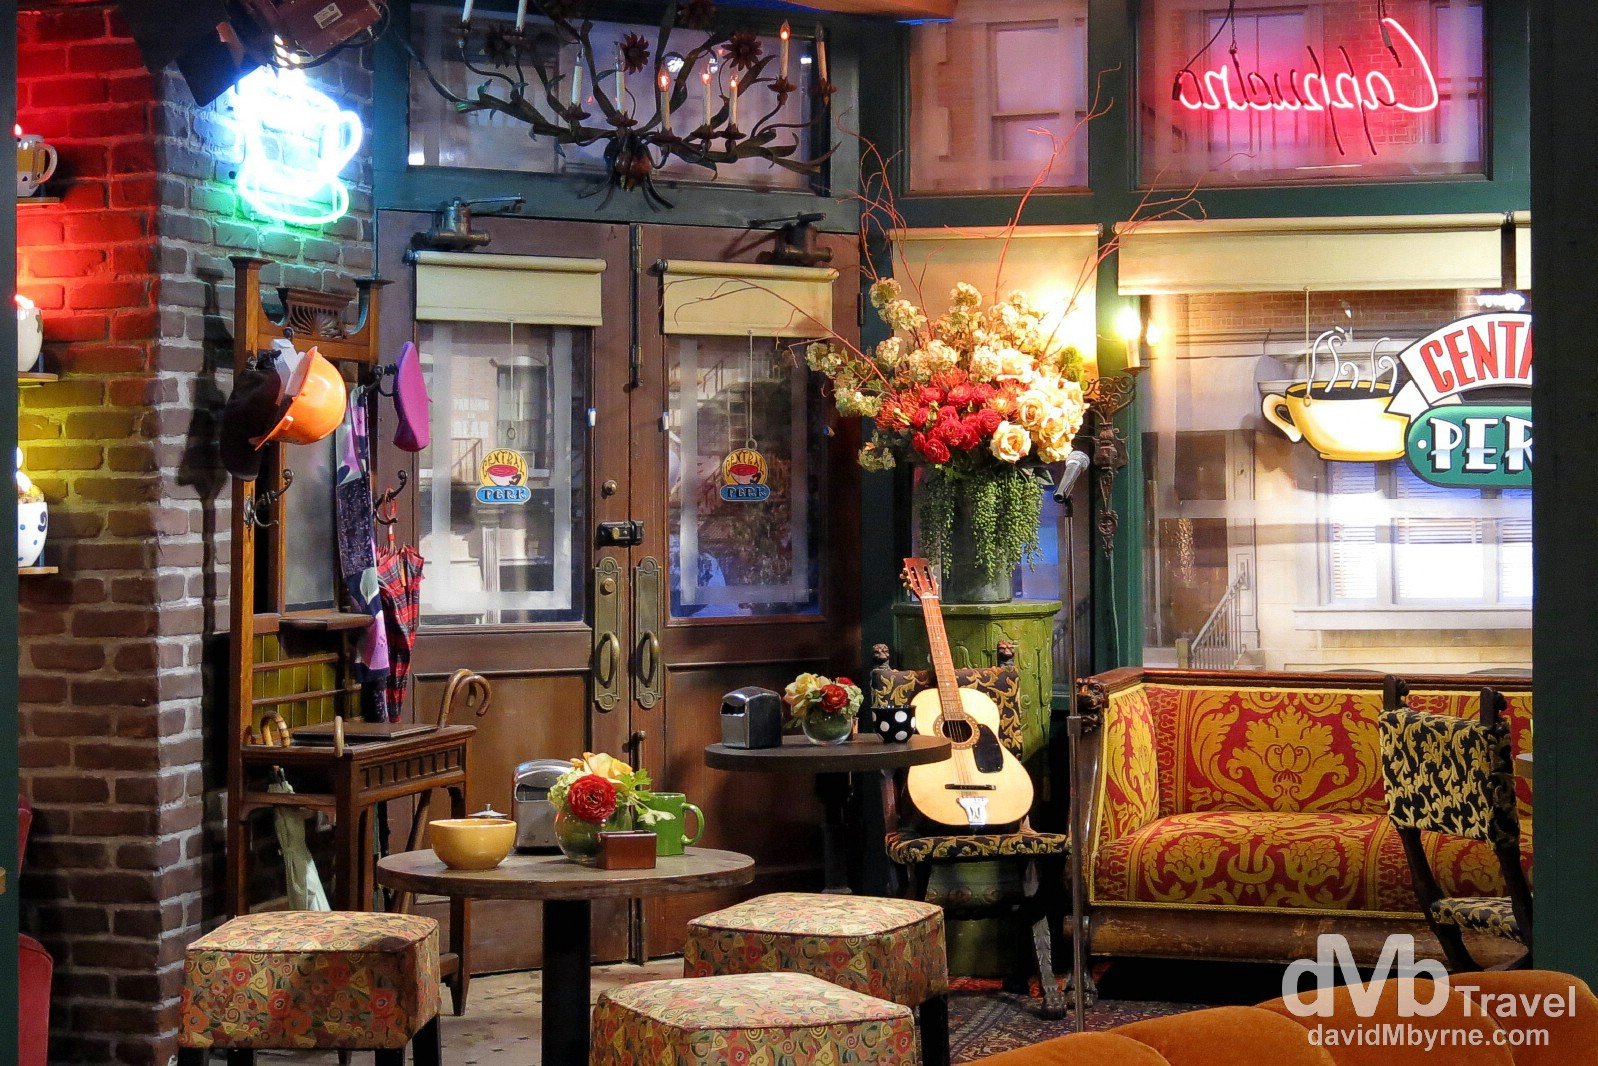 Central Perk, the coffee house from Friends, in Warner Brothers Studios. Burbank, Los Angles, California, USA. April 13th 2013.